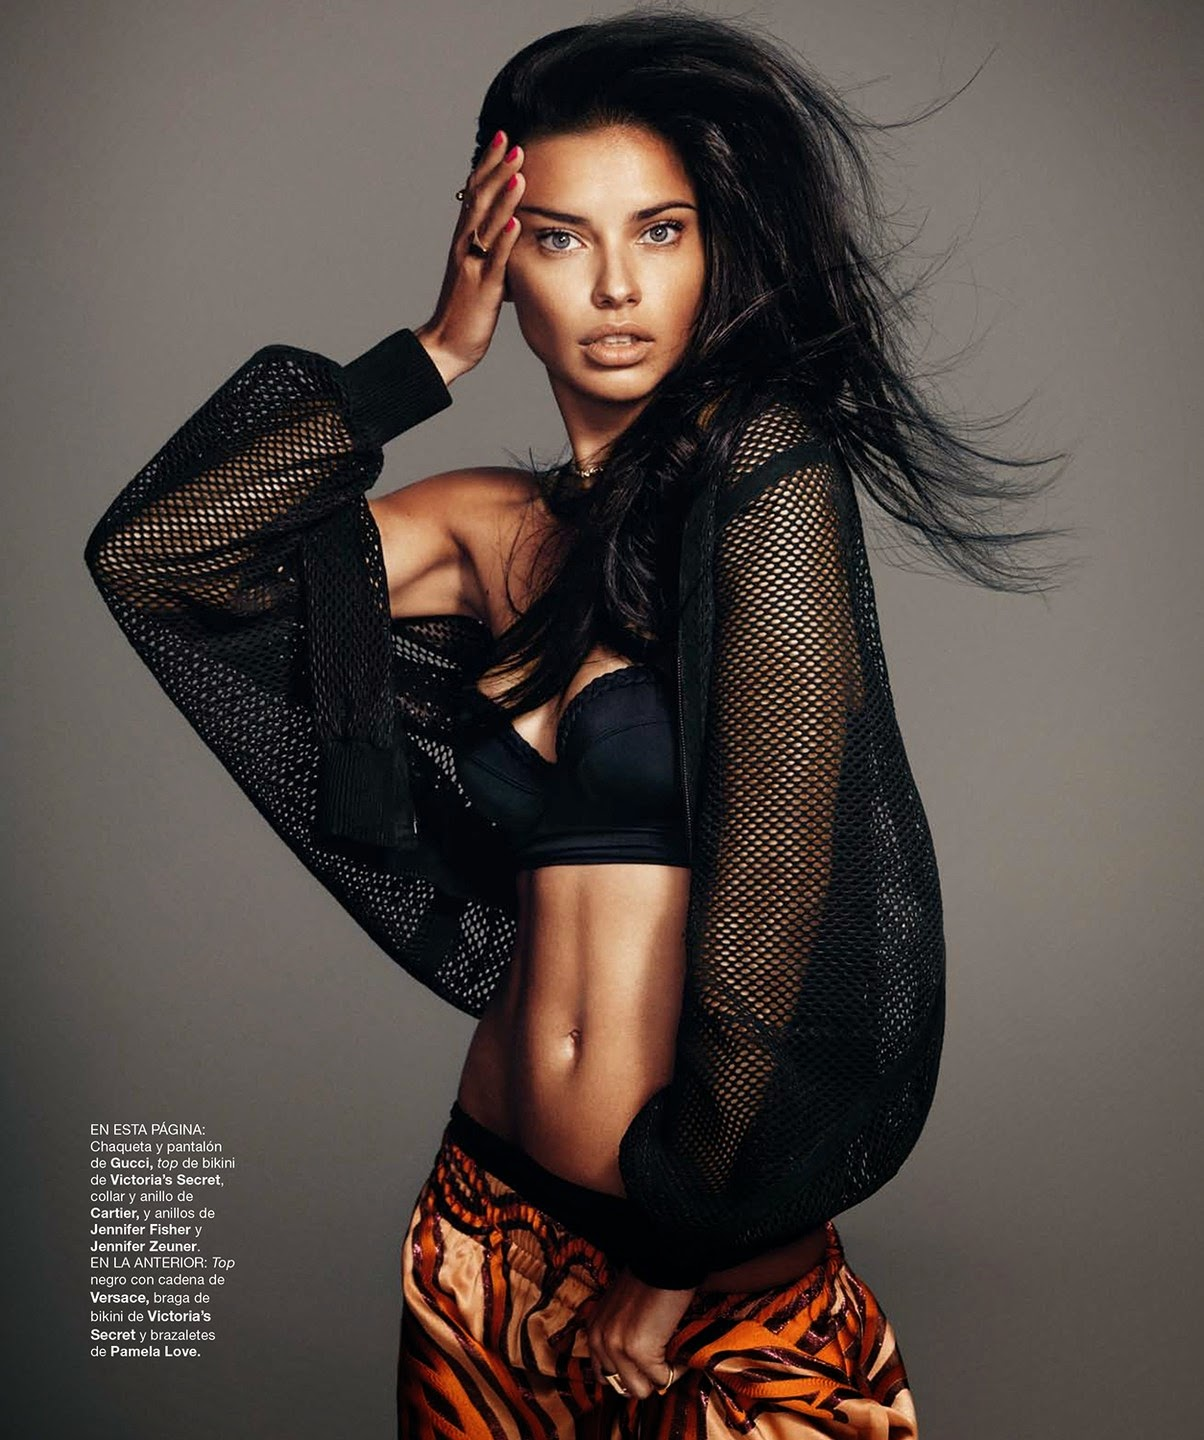 Magazine Photoshoot : Adriana Lima Photoshot For Harper's Bazaar Magazine Spain February 2014 Issu